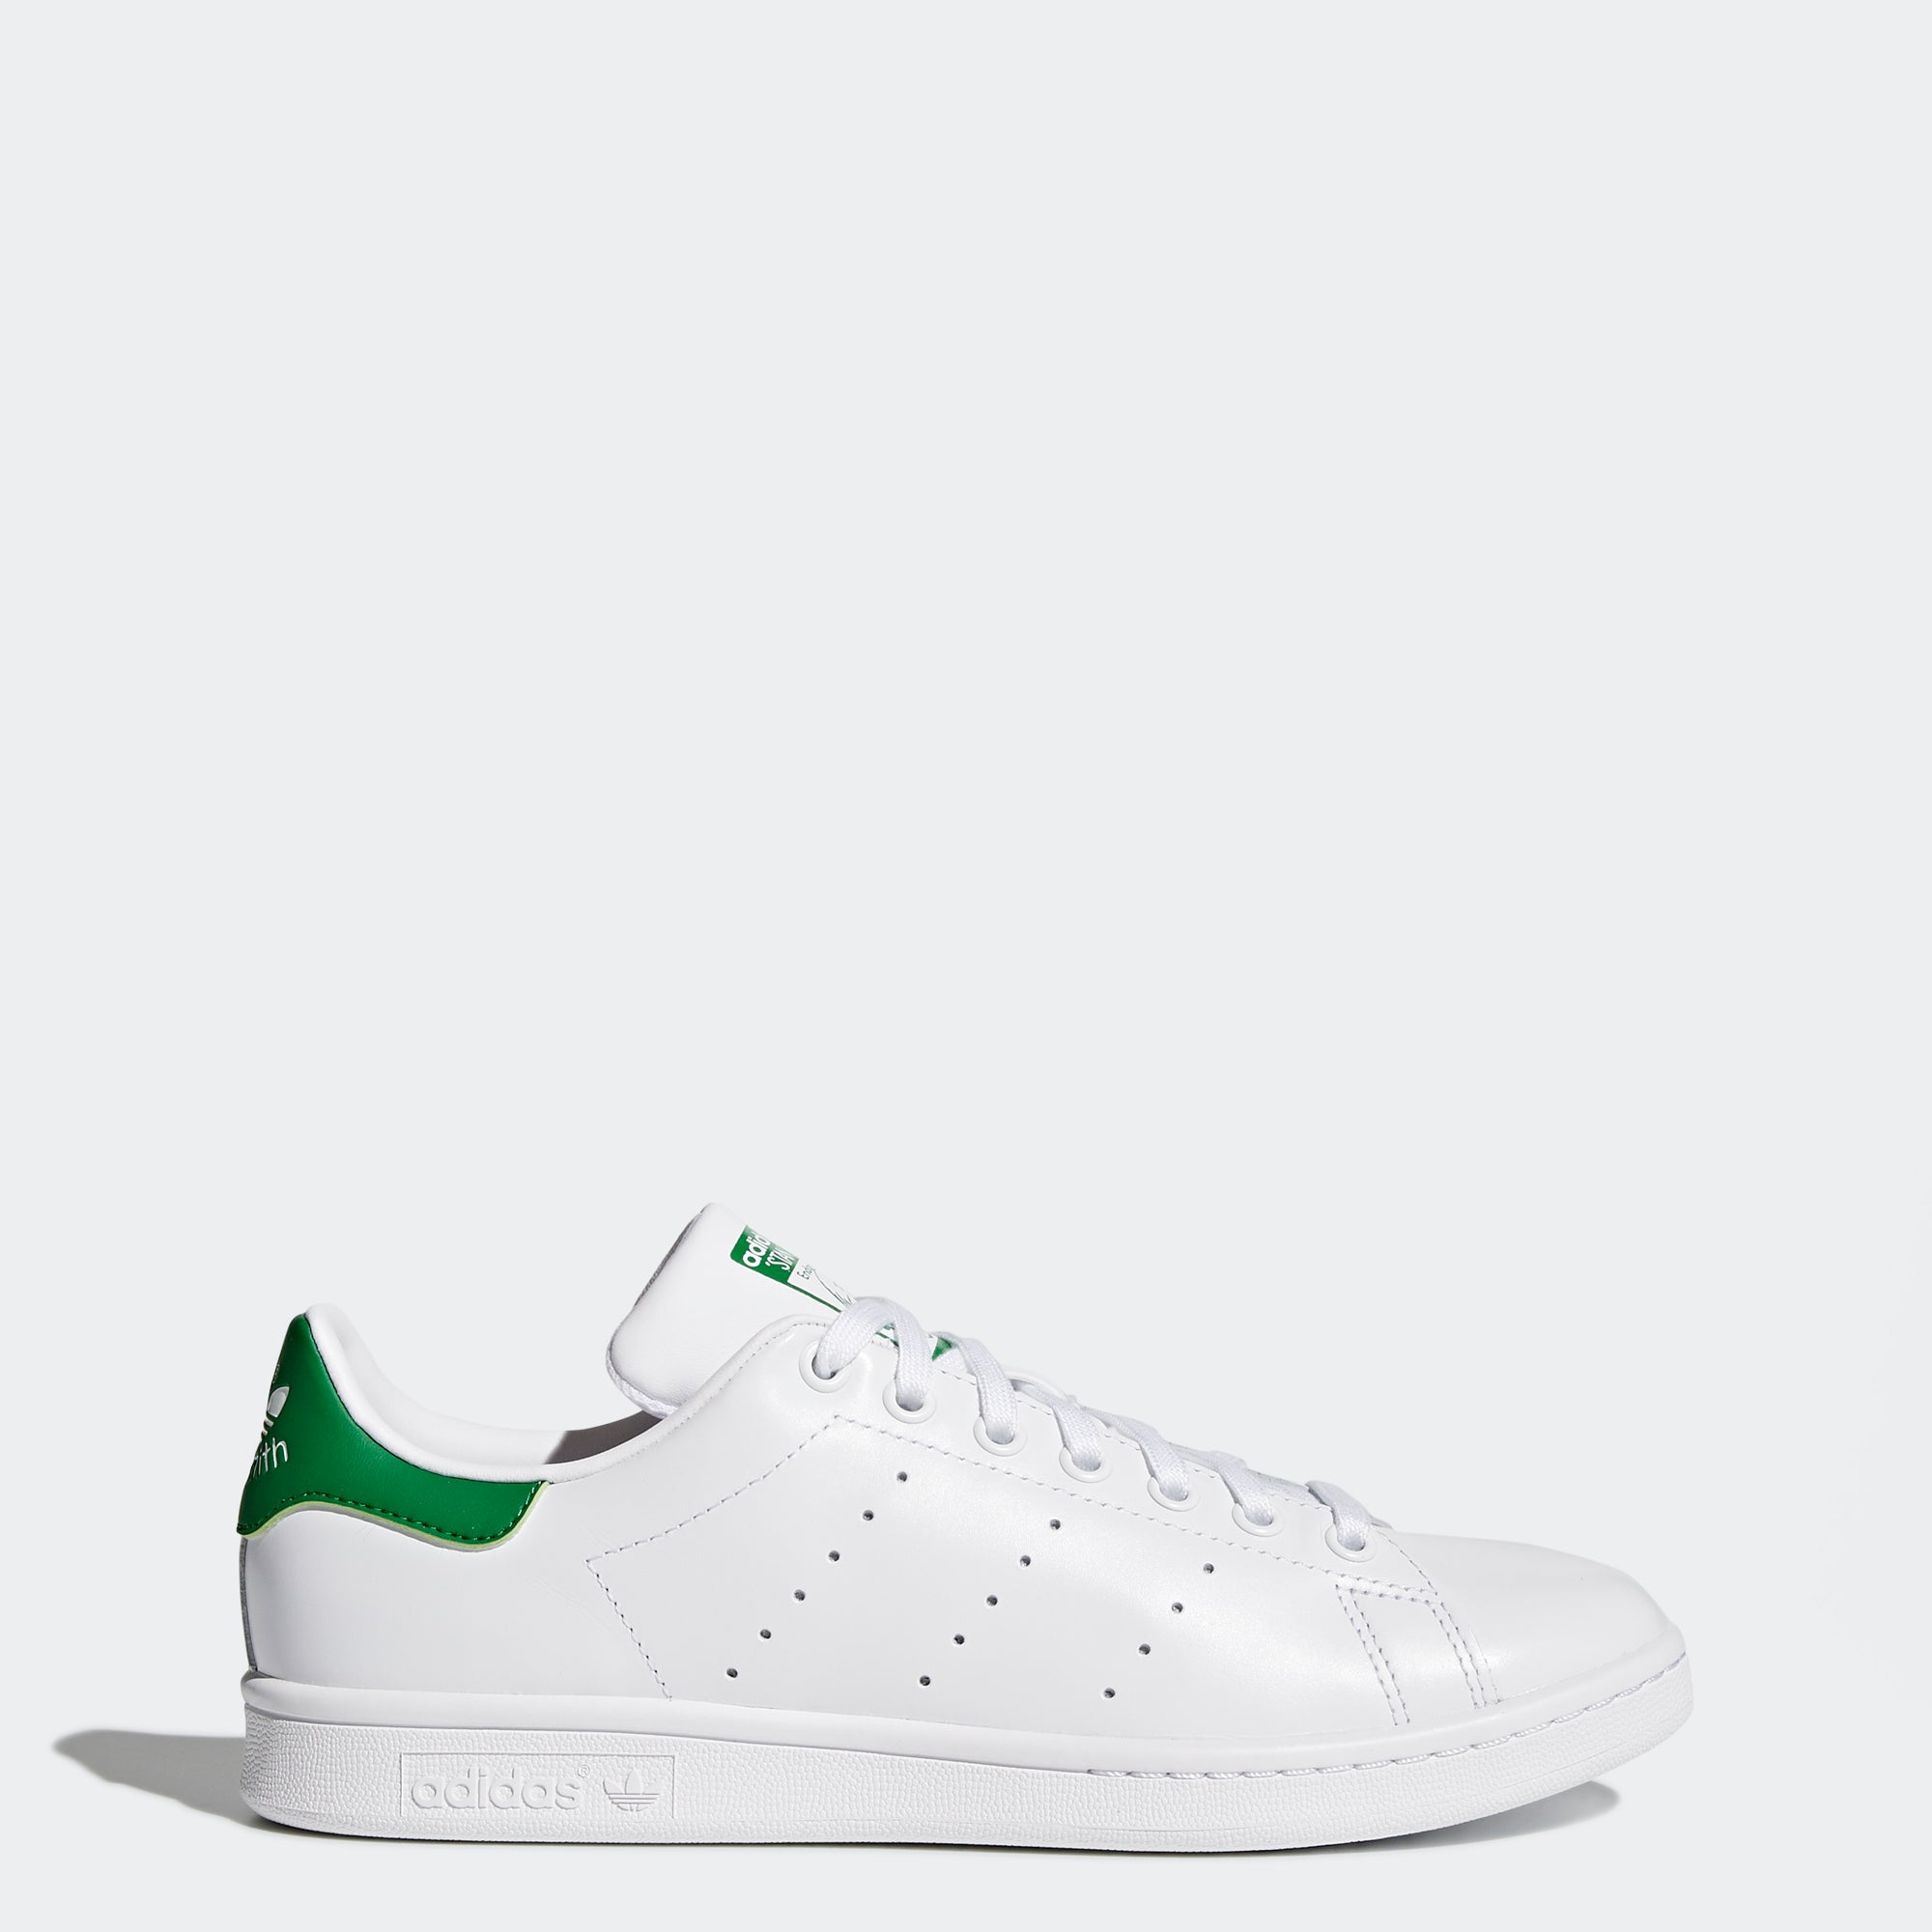 243d1256b9cd4 Men s adidas Originals Stan Smith Shoes Cloud White.  75.00